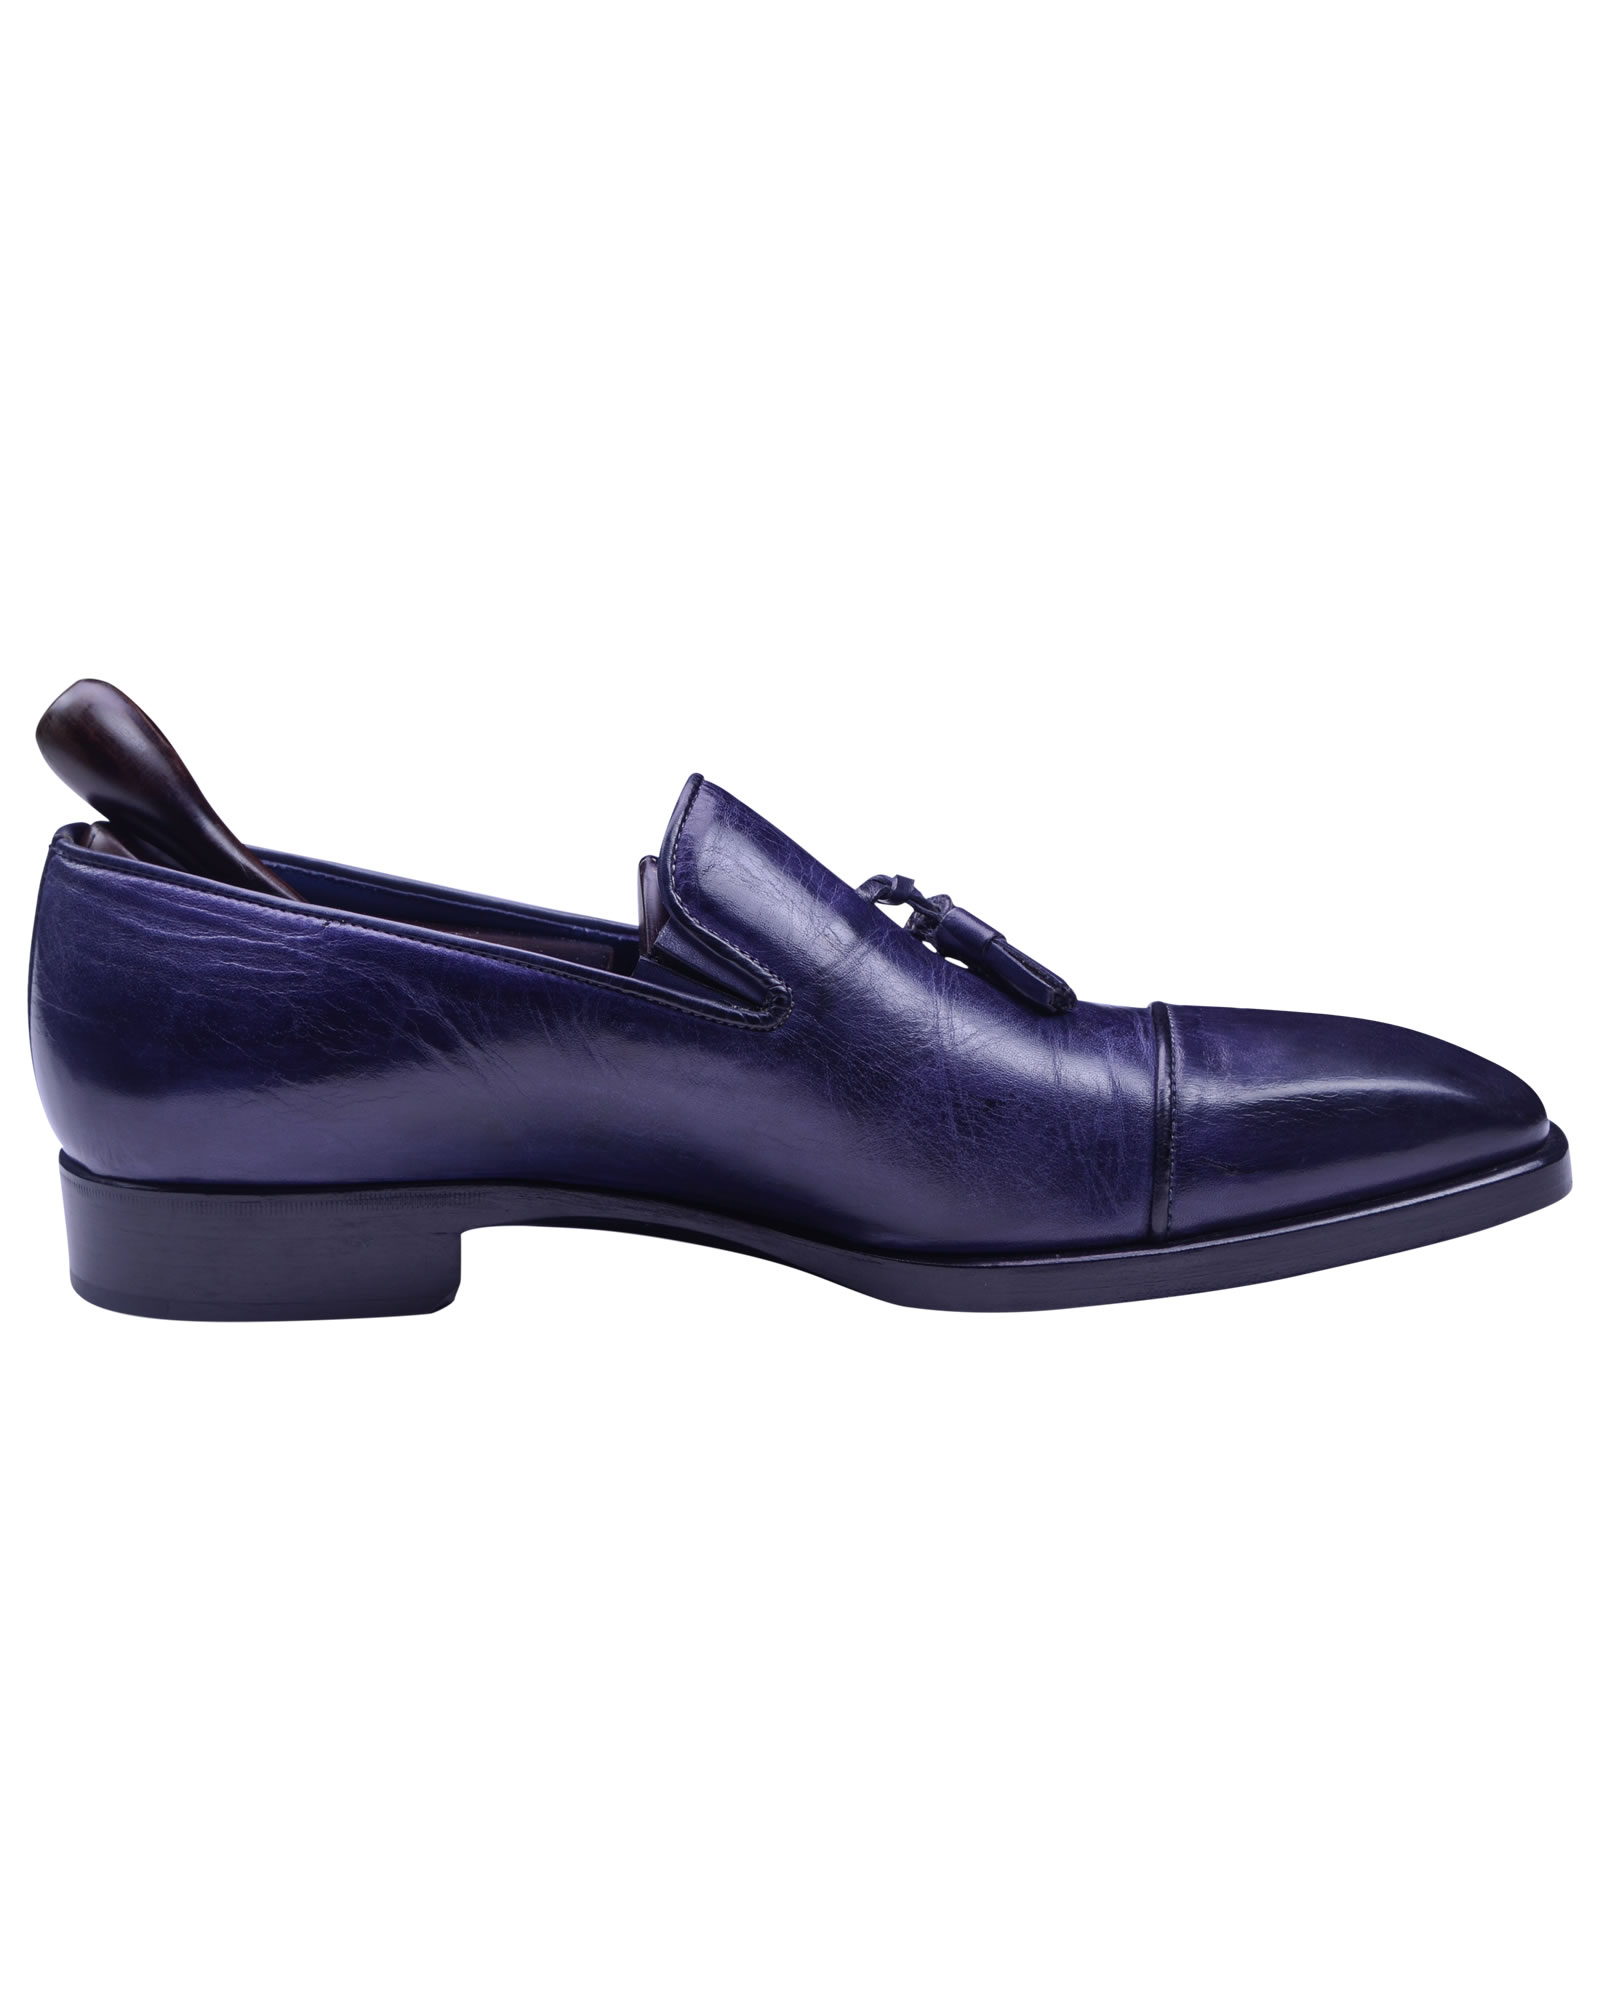 Angelo Galasso Signature Royal Blue Loafer shoes